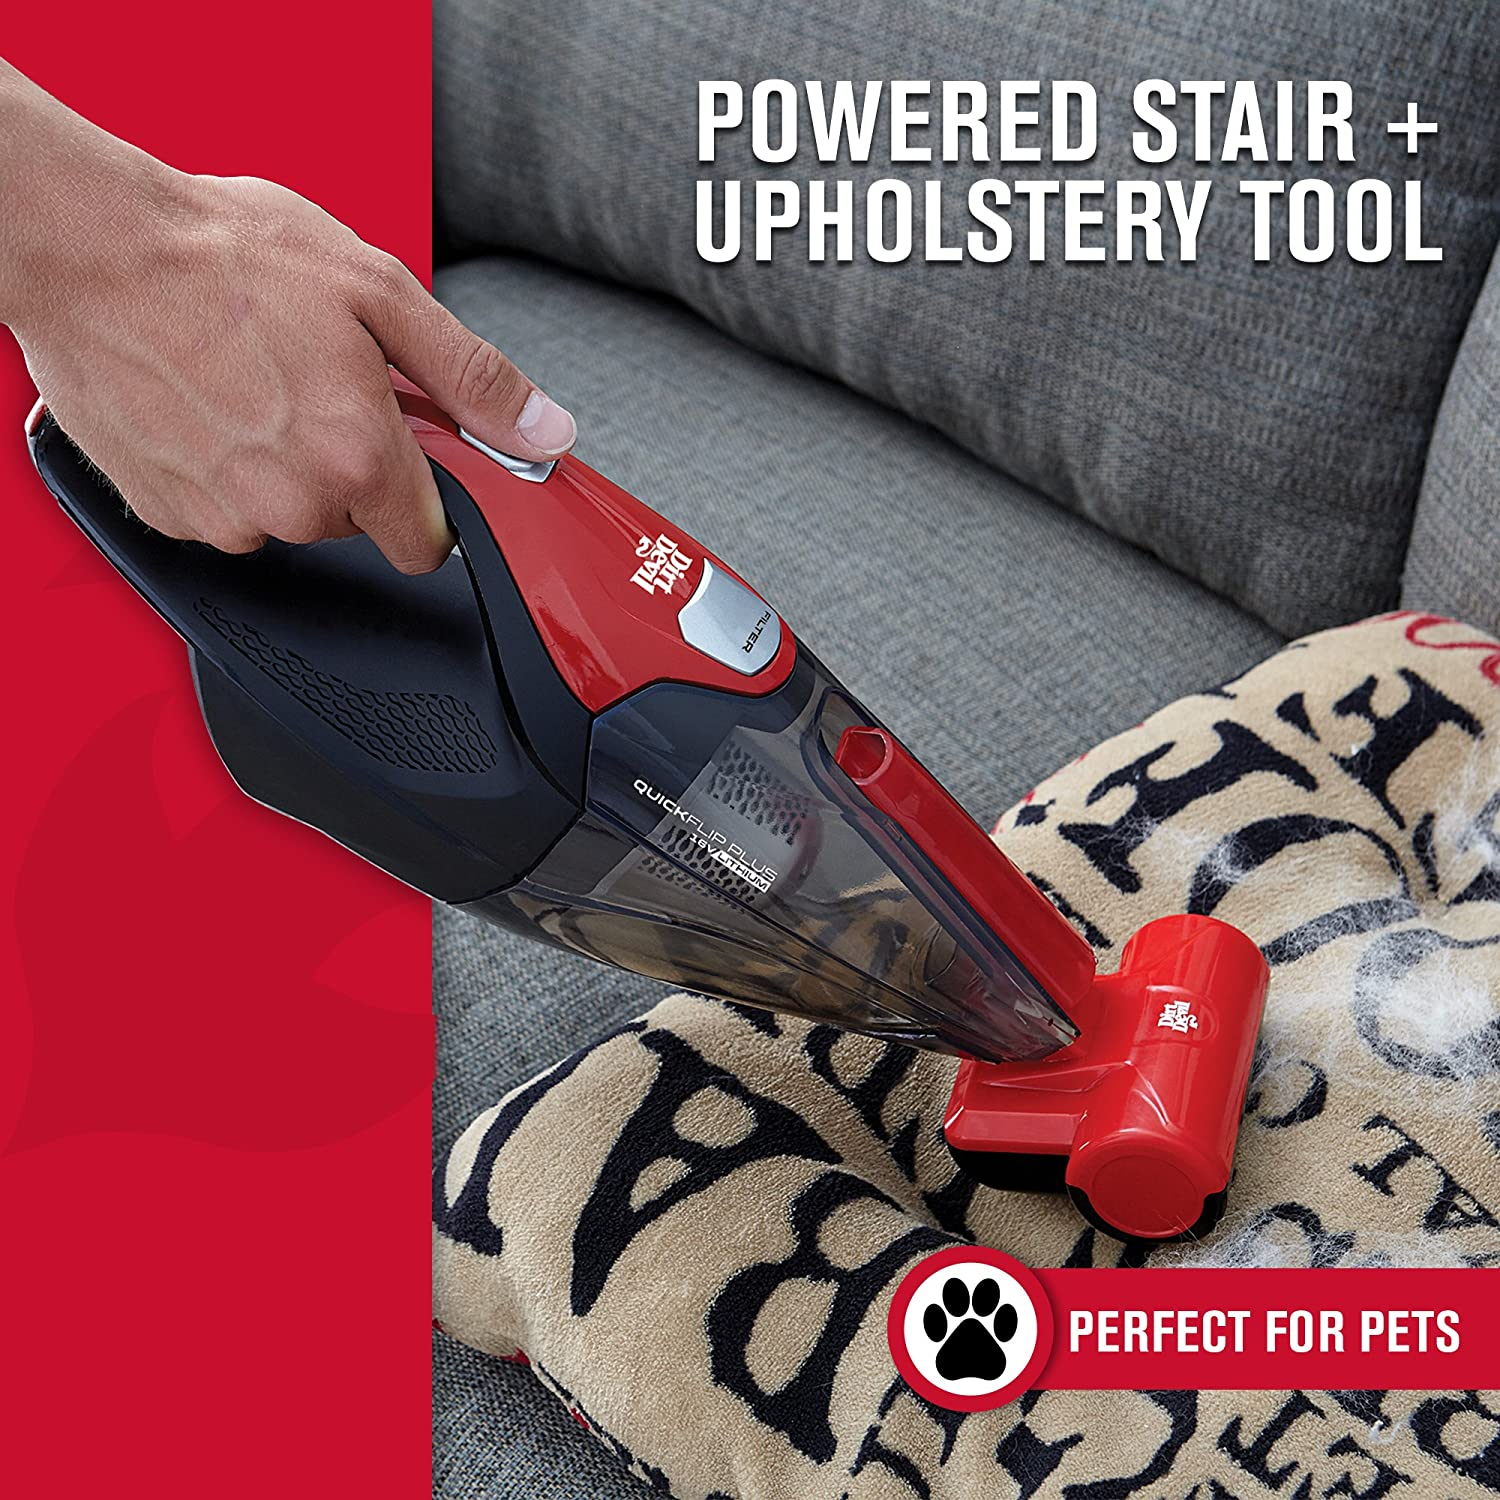 vacuum tool for pet hair